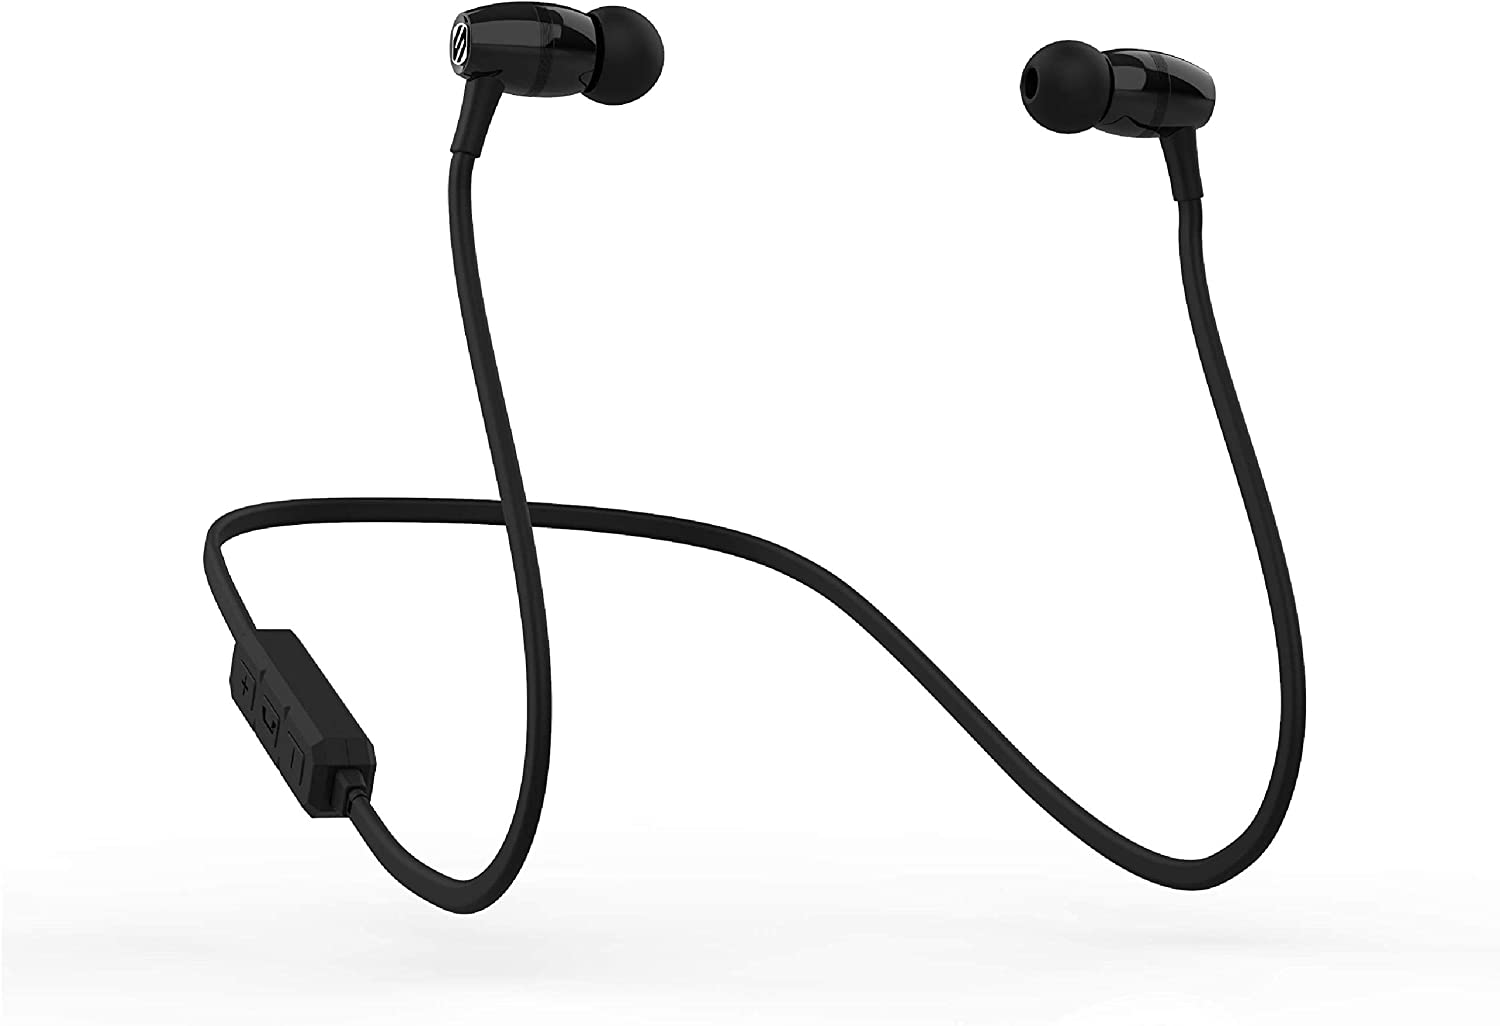 SCOSCHE BT102 Rechargeable Bluetooth Wireless Earbuds with in-Line Microphone, Music Control Buttons and Noise Isolating Ear Cushions in Black